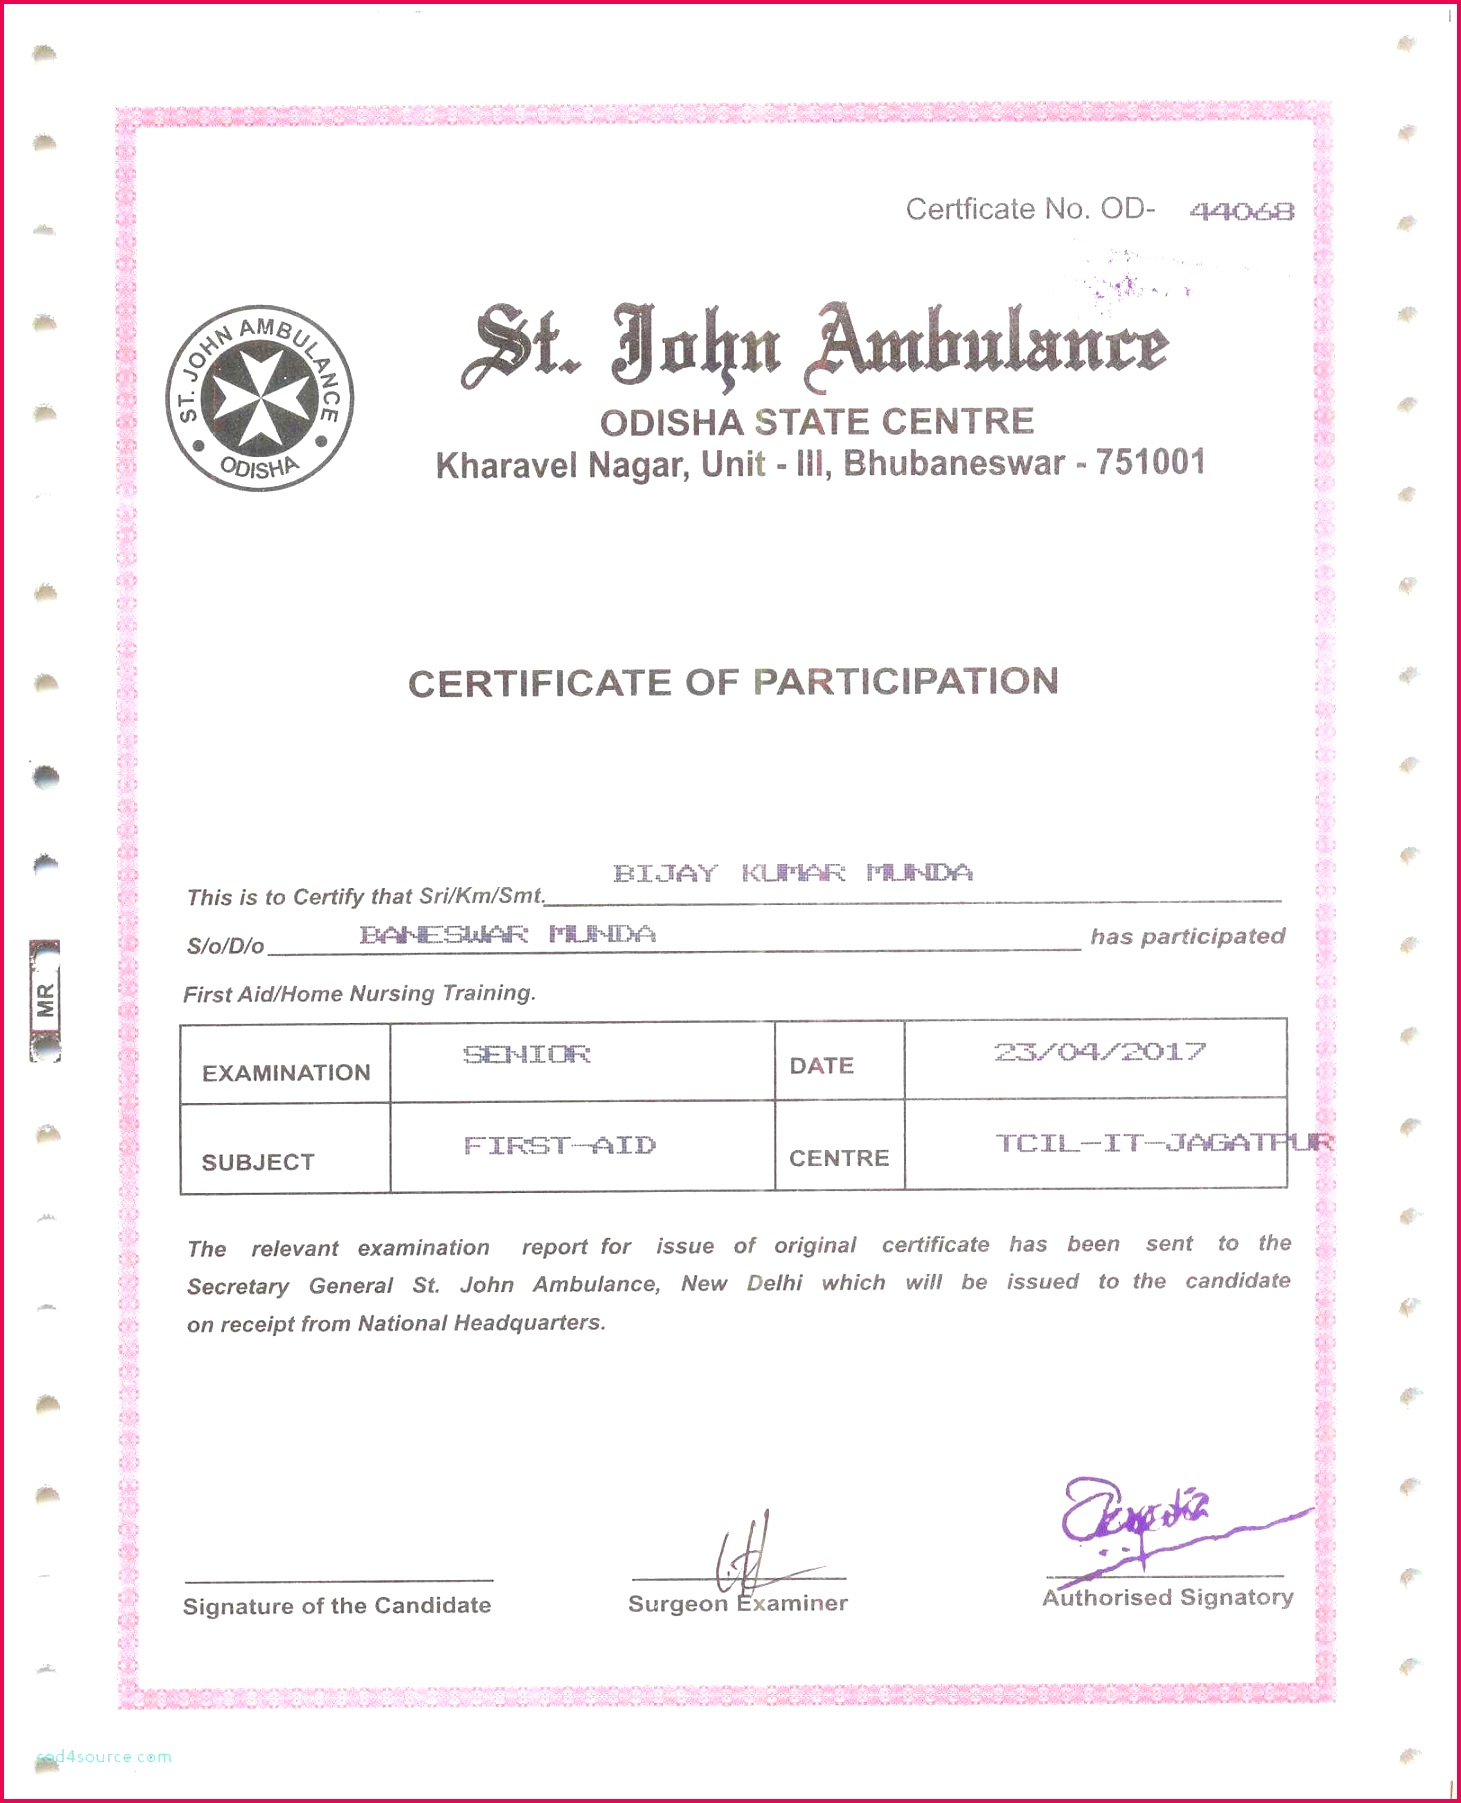 Mexican Birth Certificate In English: 4 French Birth Certificate Translation Sample 98469